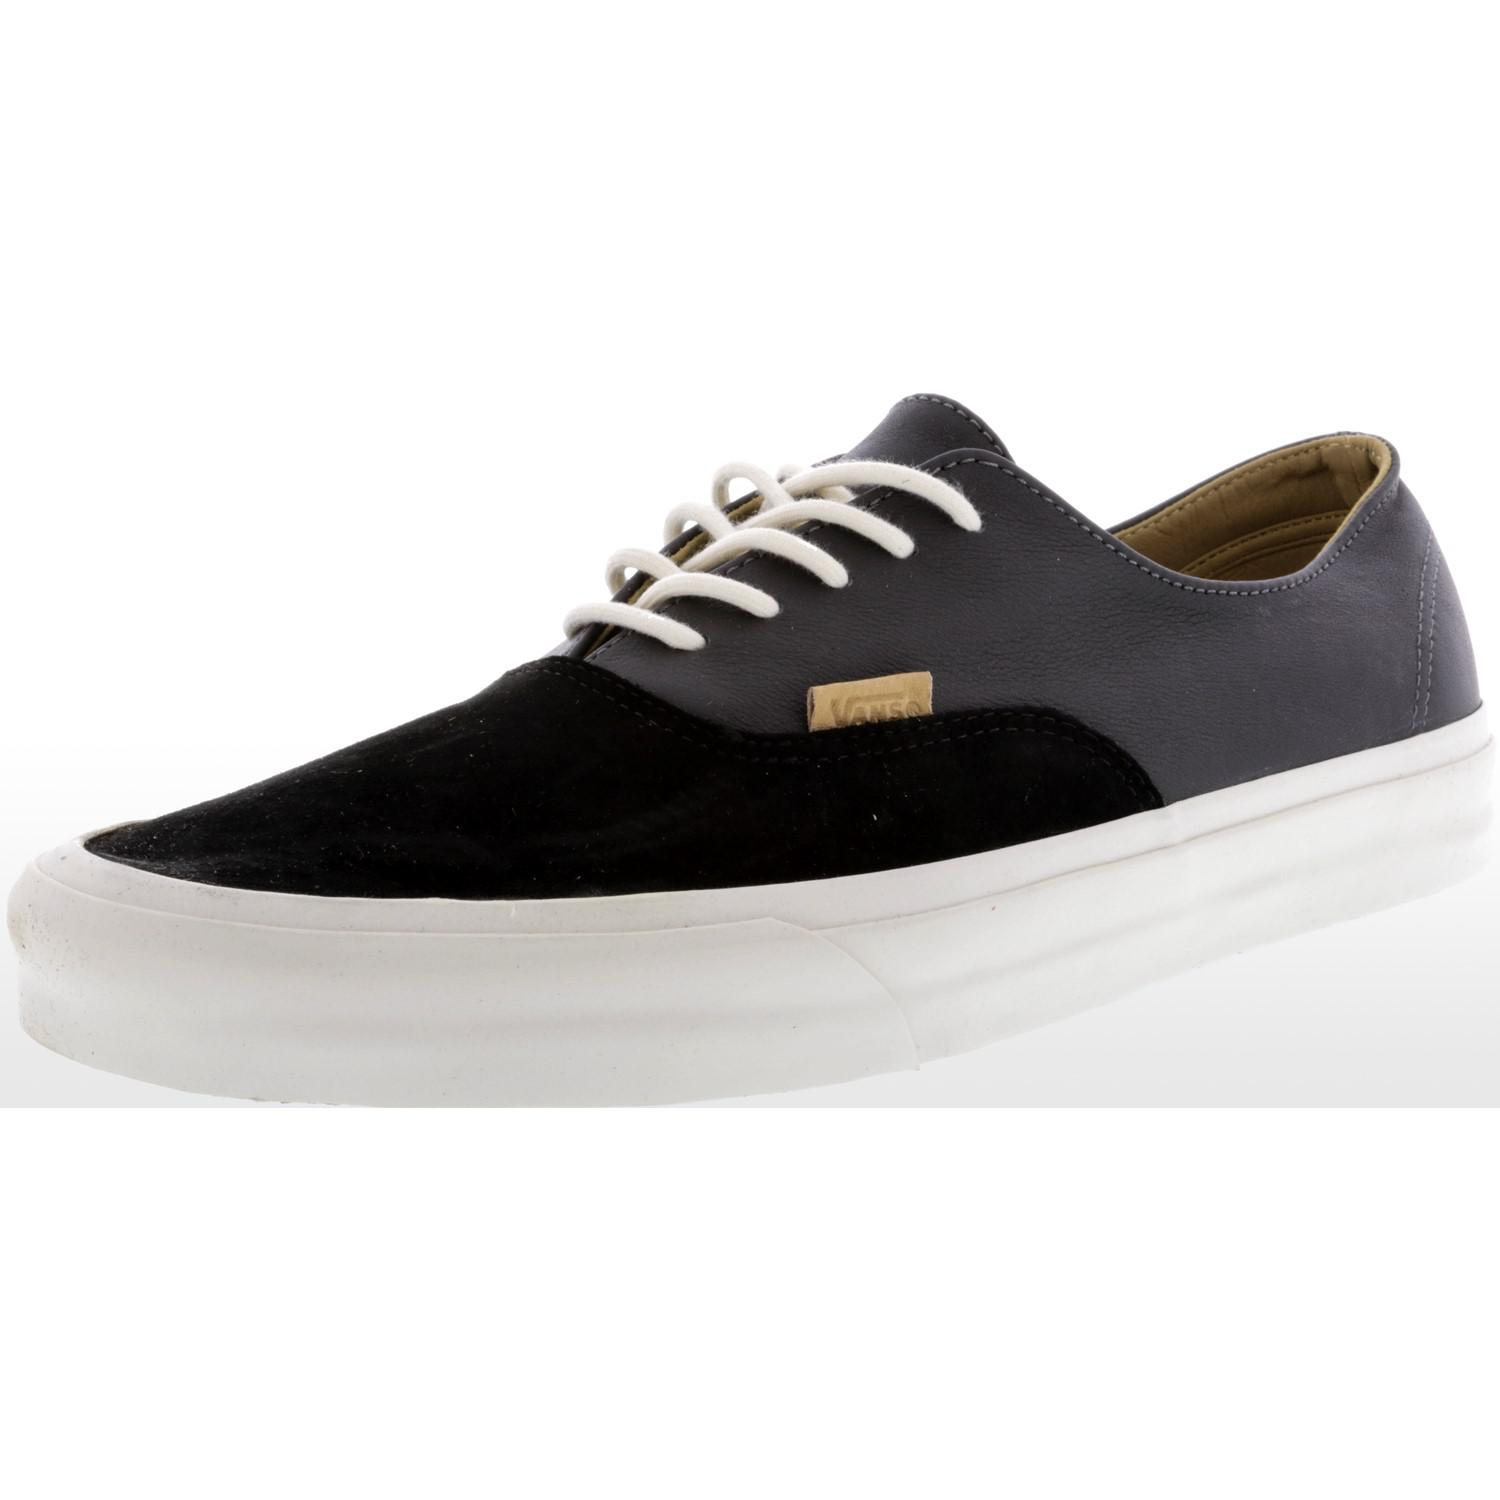 212a8352b94d Lyst - Vans Authentic Decon Pig Suede And Leather Ankle-high ...